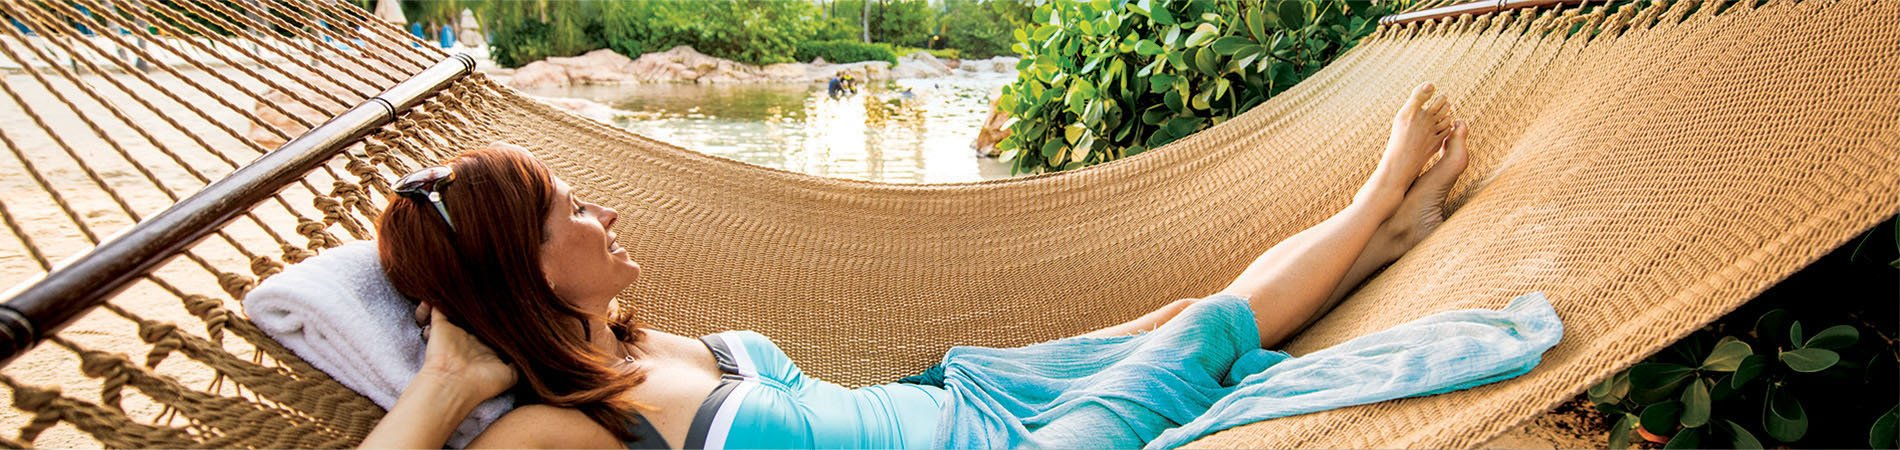 Enjoy hours of relaxation at Discovery Cove.